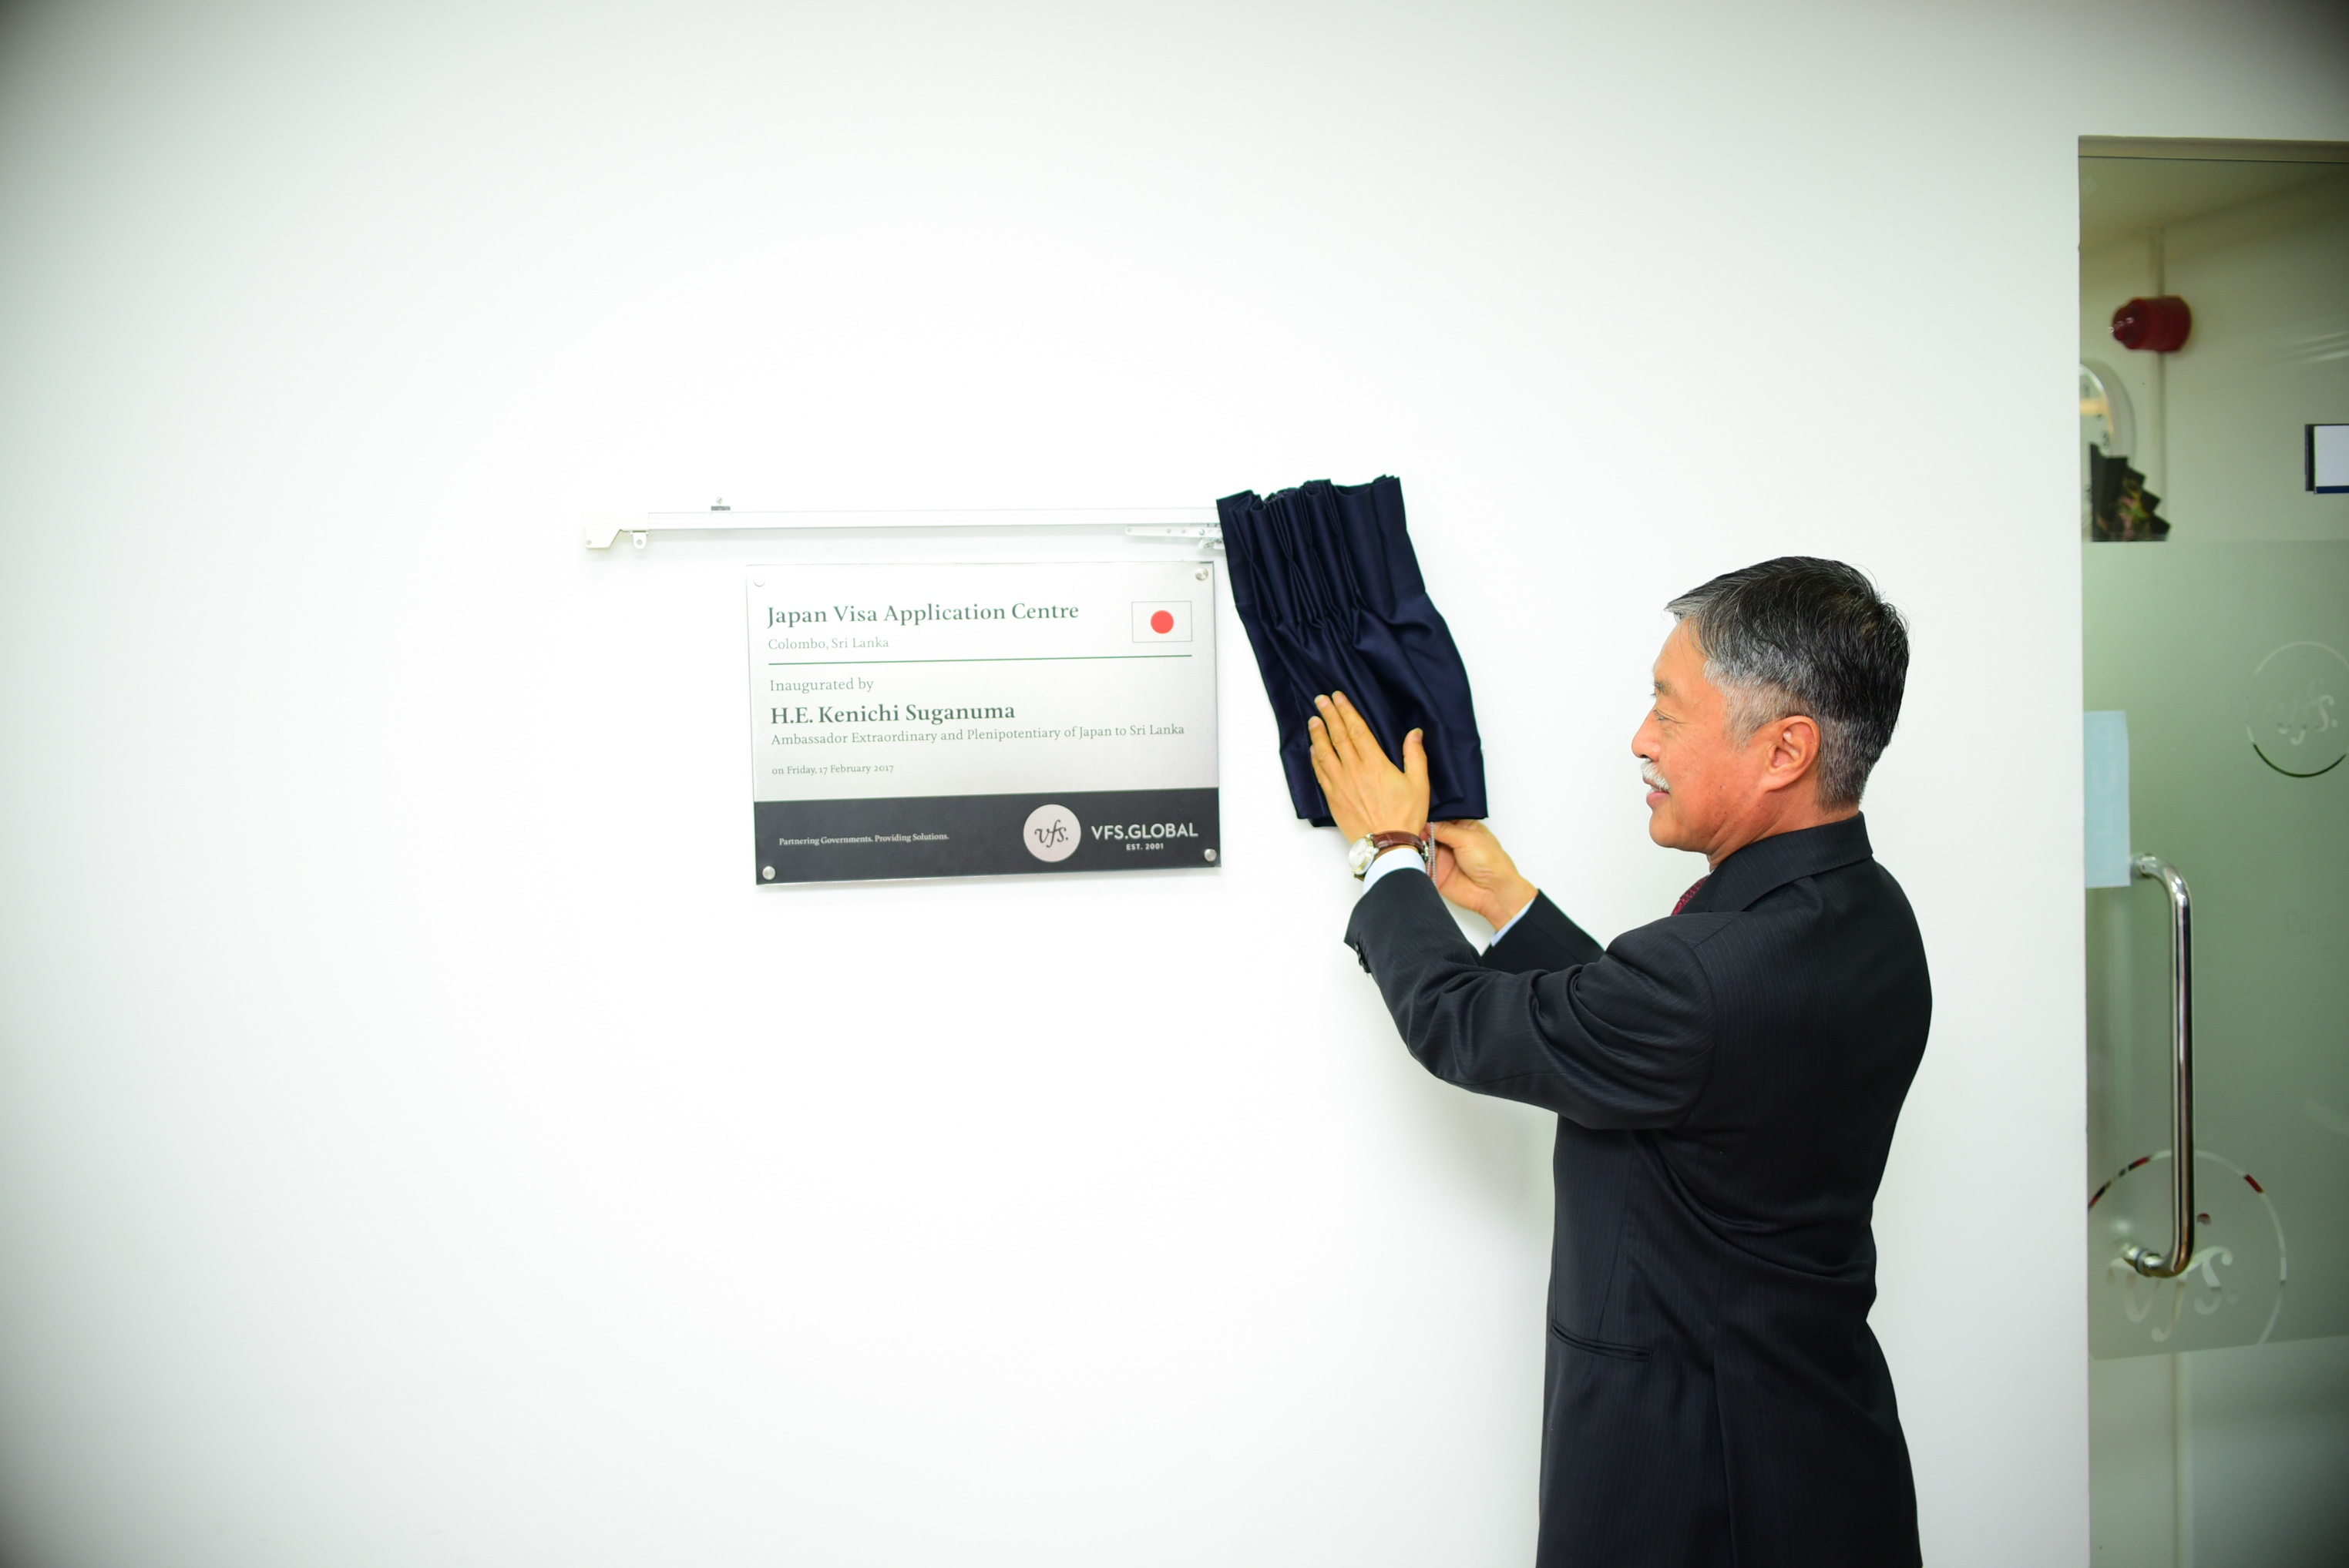 Grand opening of the Japan Visa Application Centre : Embassy